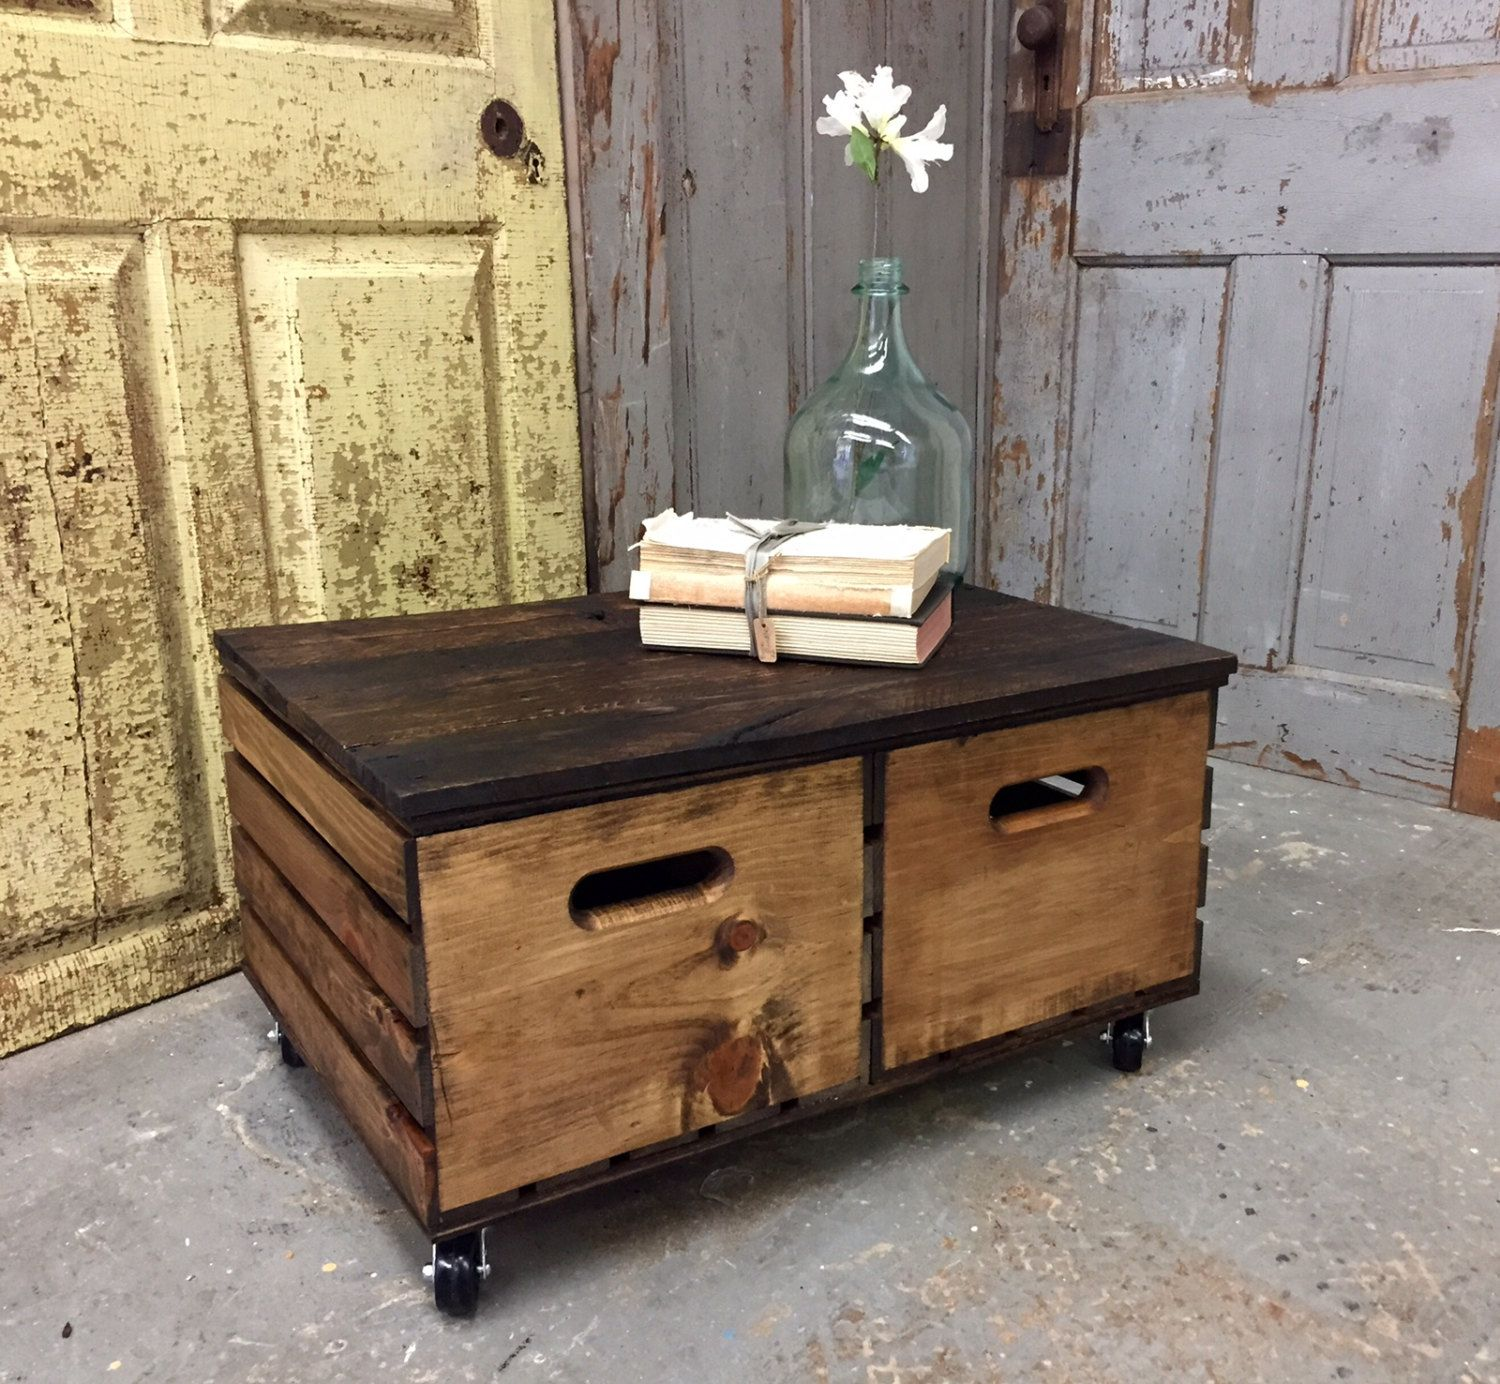 Crate Coffee Table, Side Table With Storage, Rustic Wood